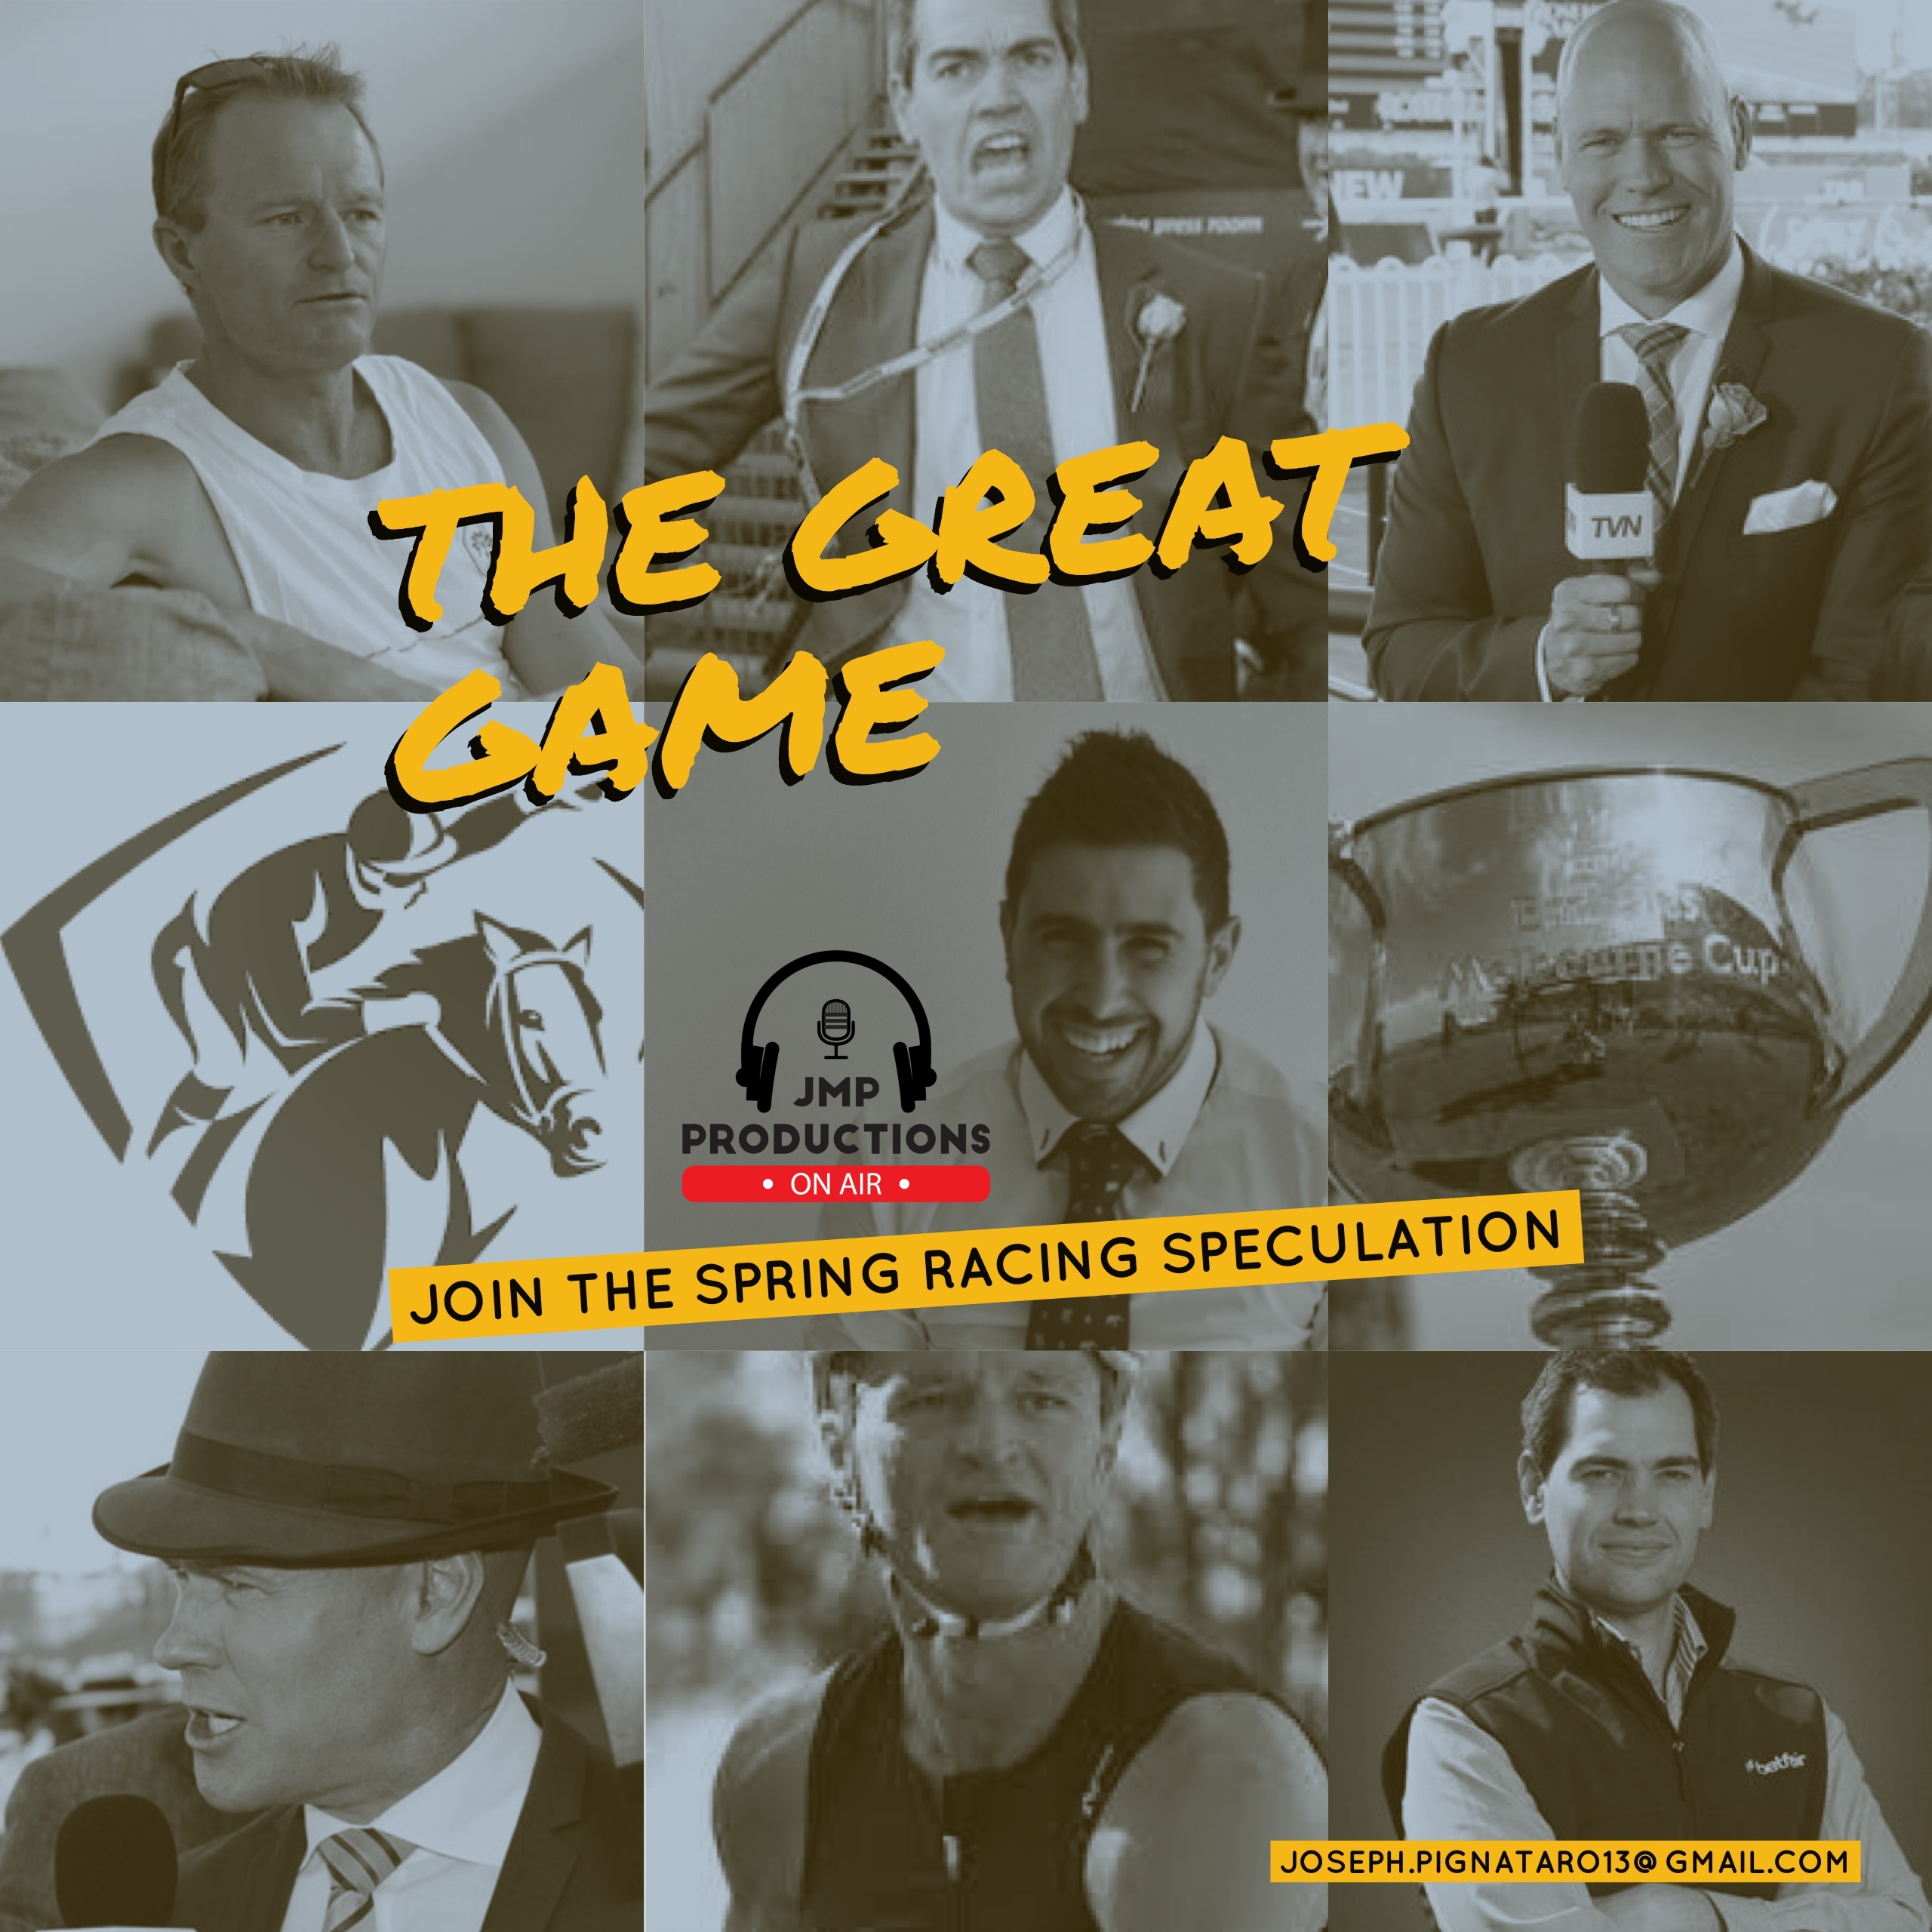 Episode 15 - The Great Game (March 28, 2019)